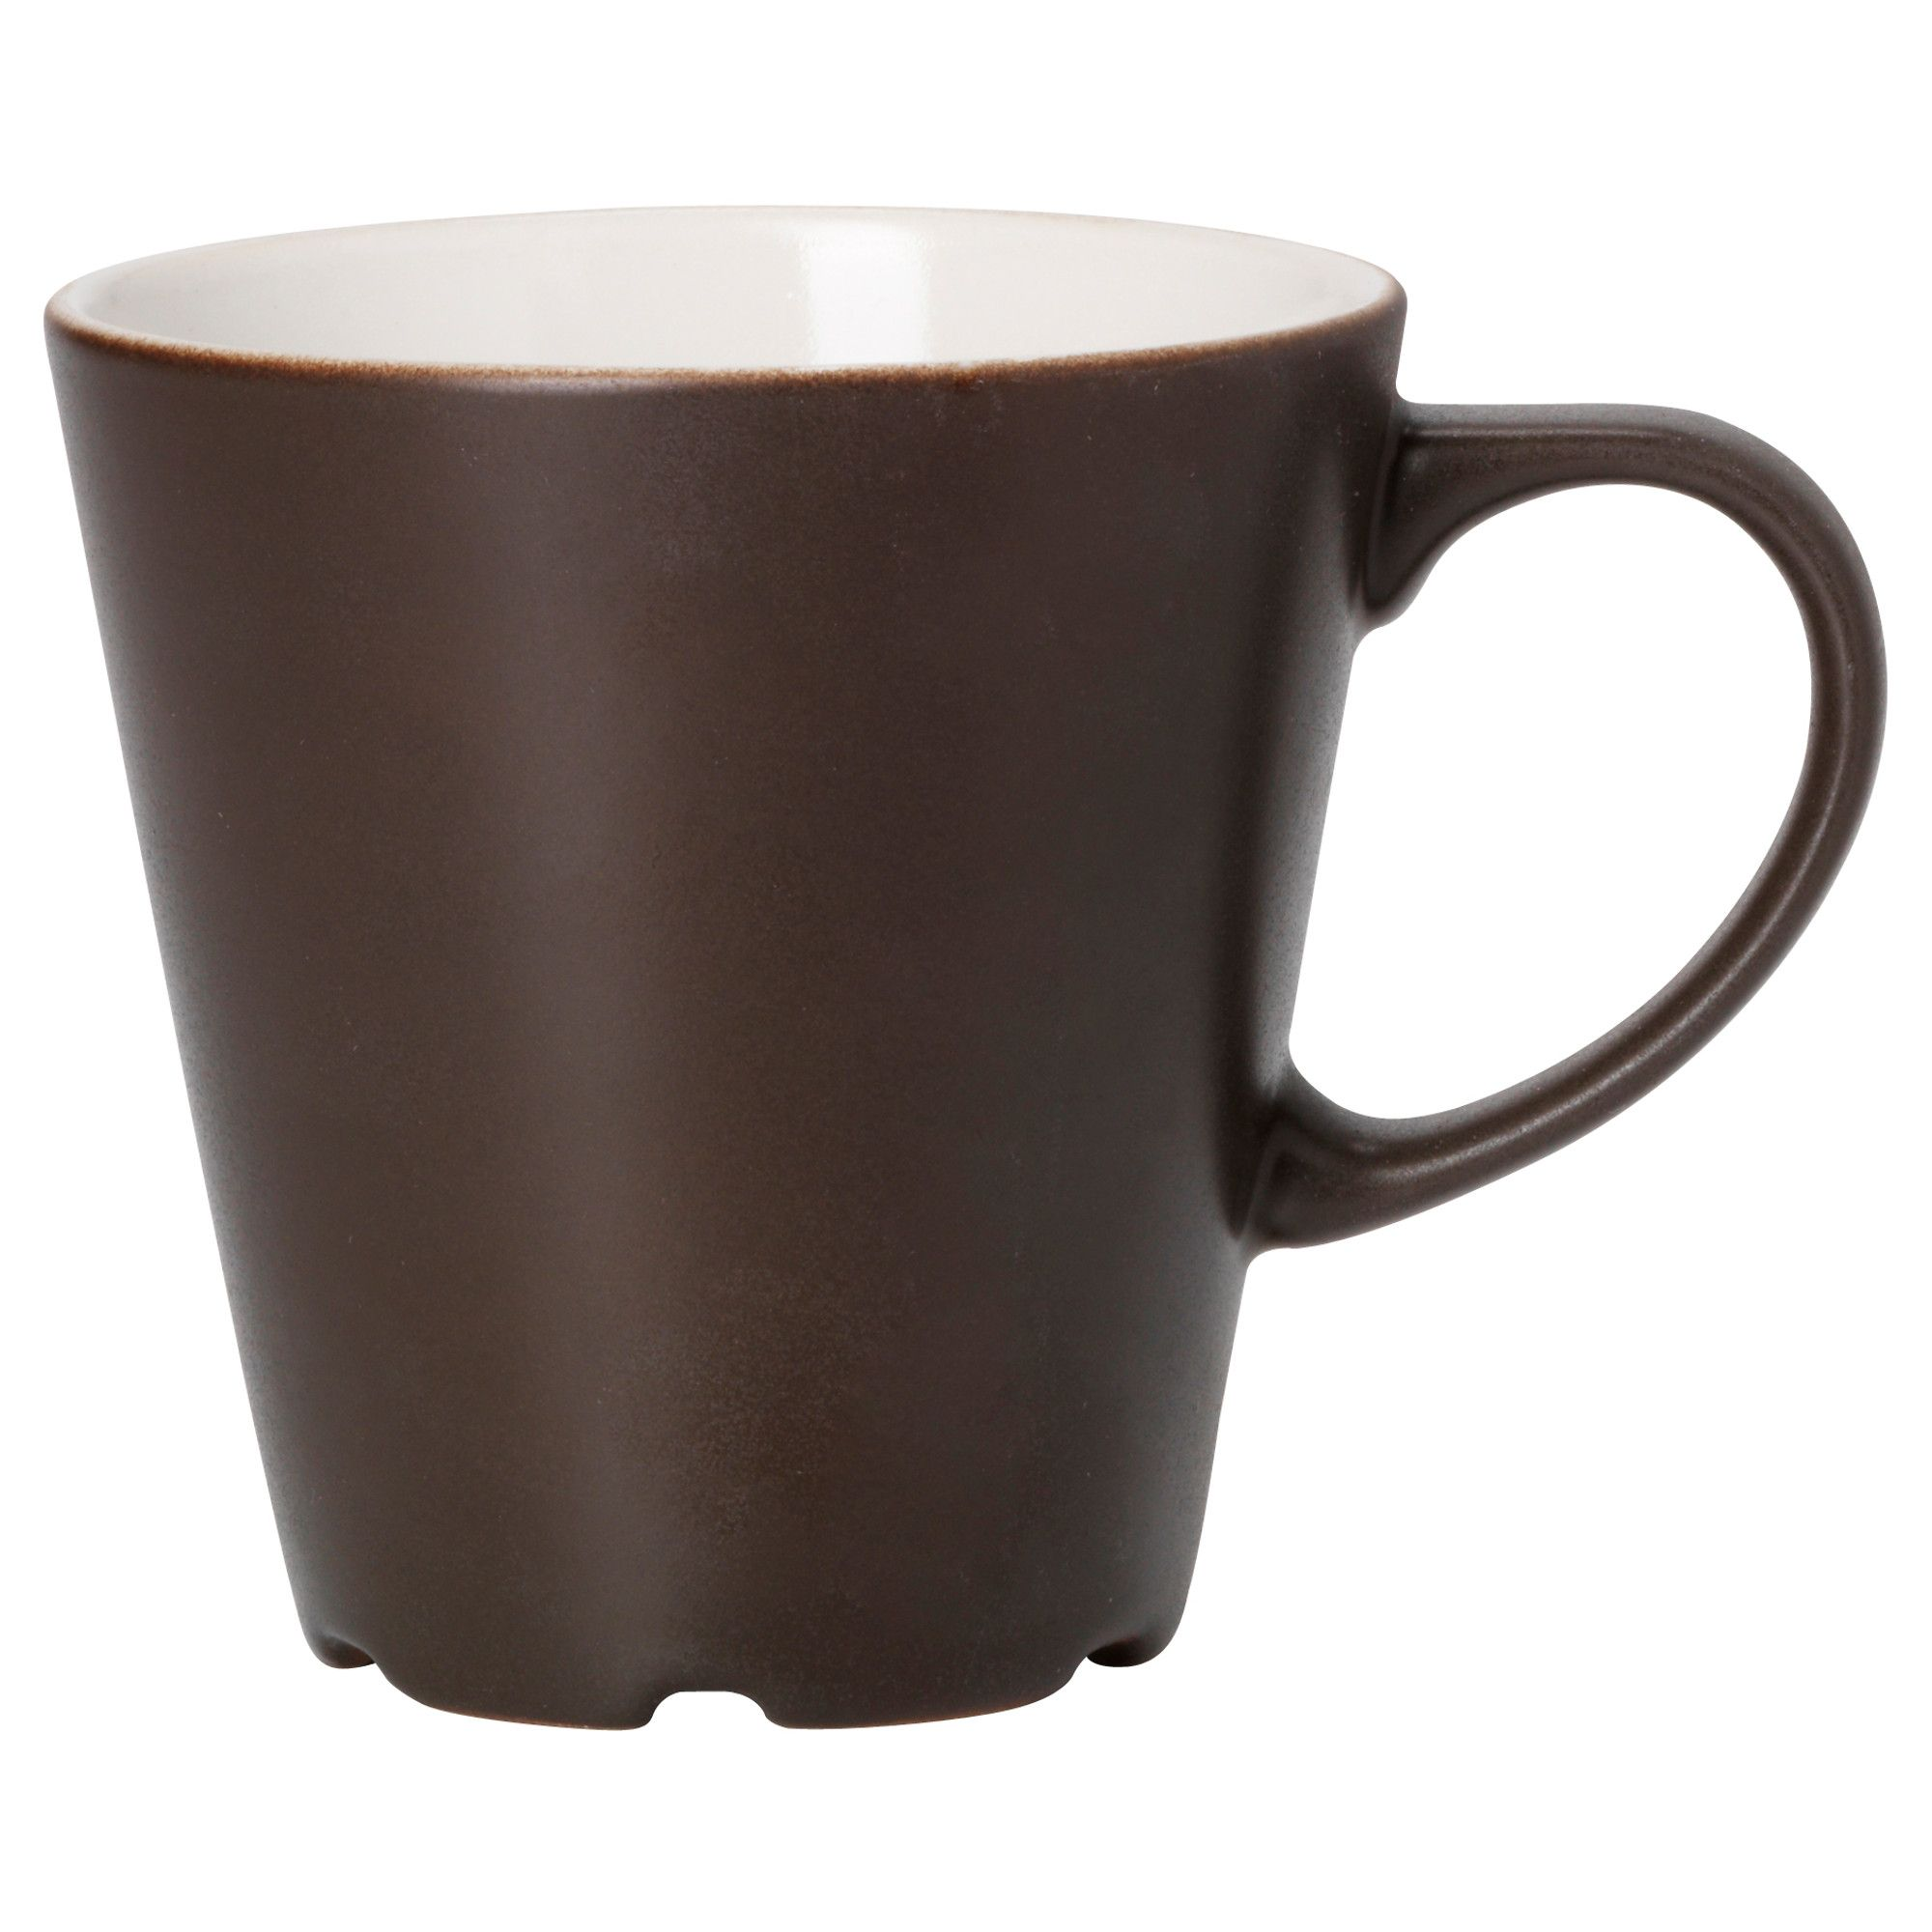 Dinera Mug Ikea With Its Simple Shapes Muted Colouratt Glaze The Dinnerware Gives A Rustic Feel To Your Table Setting